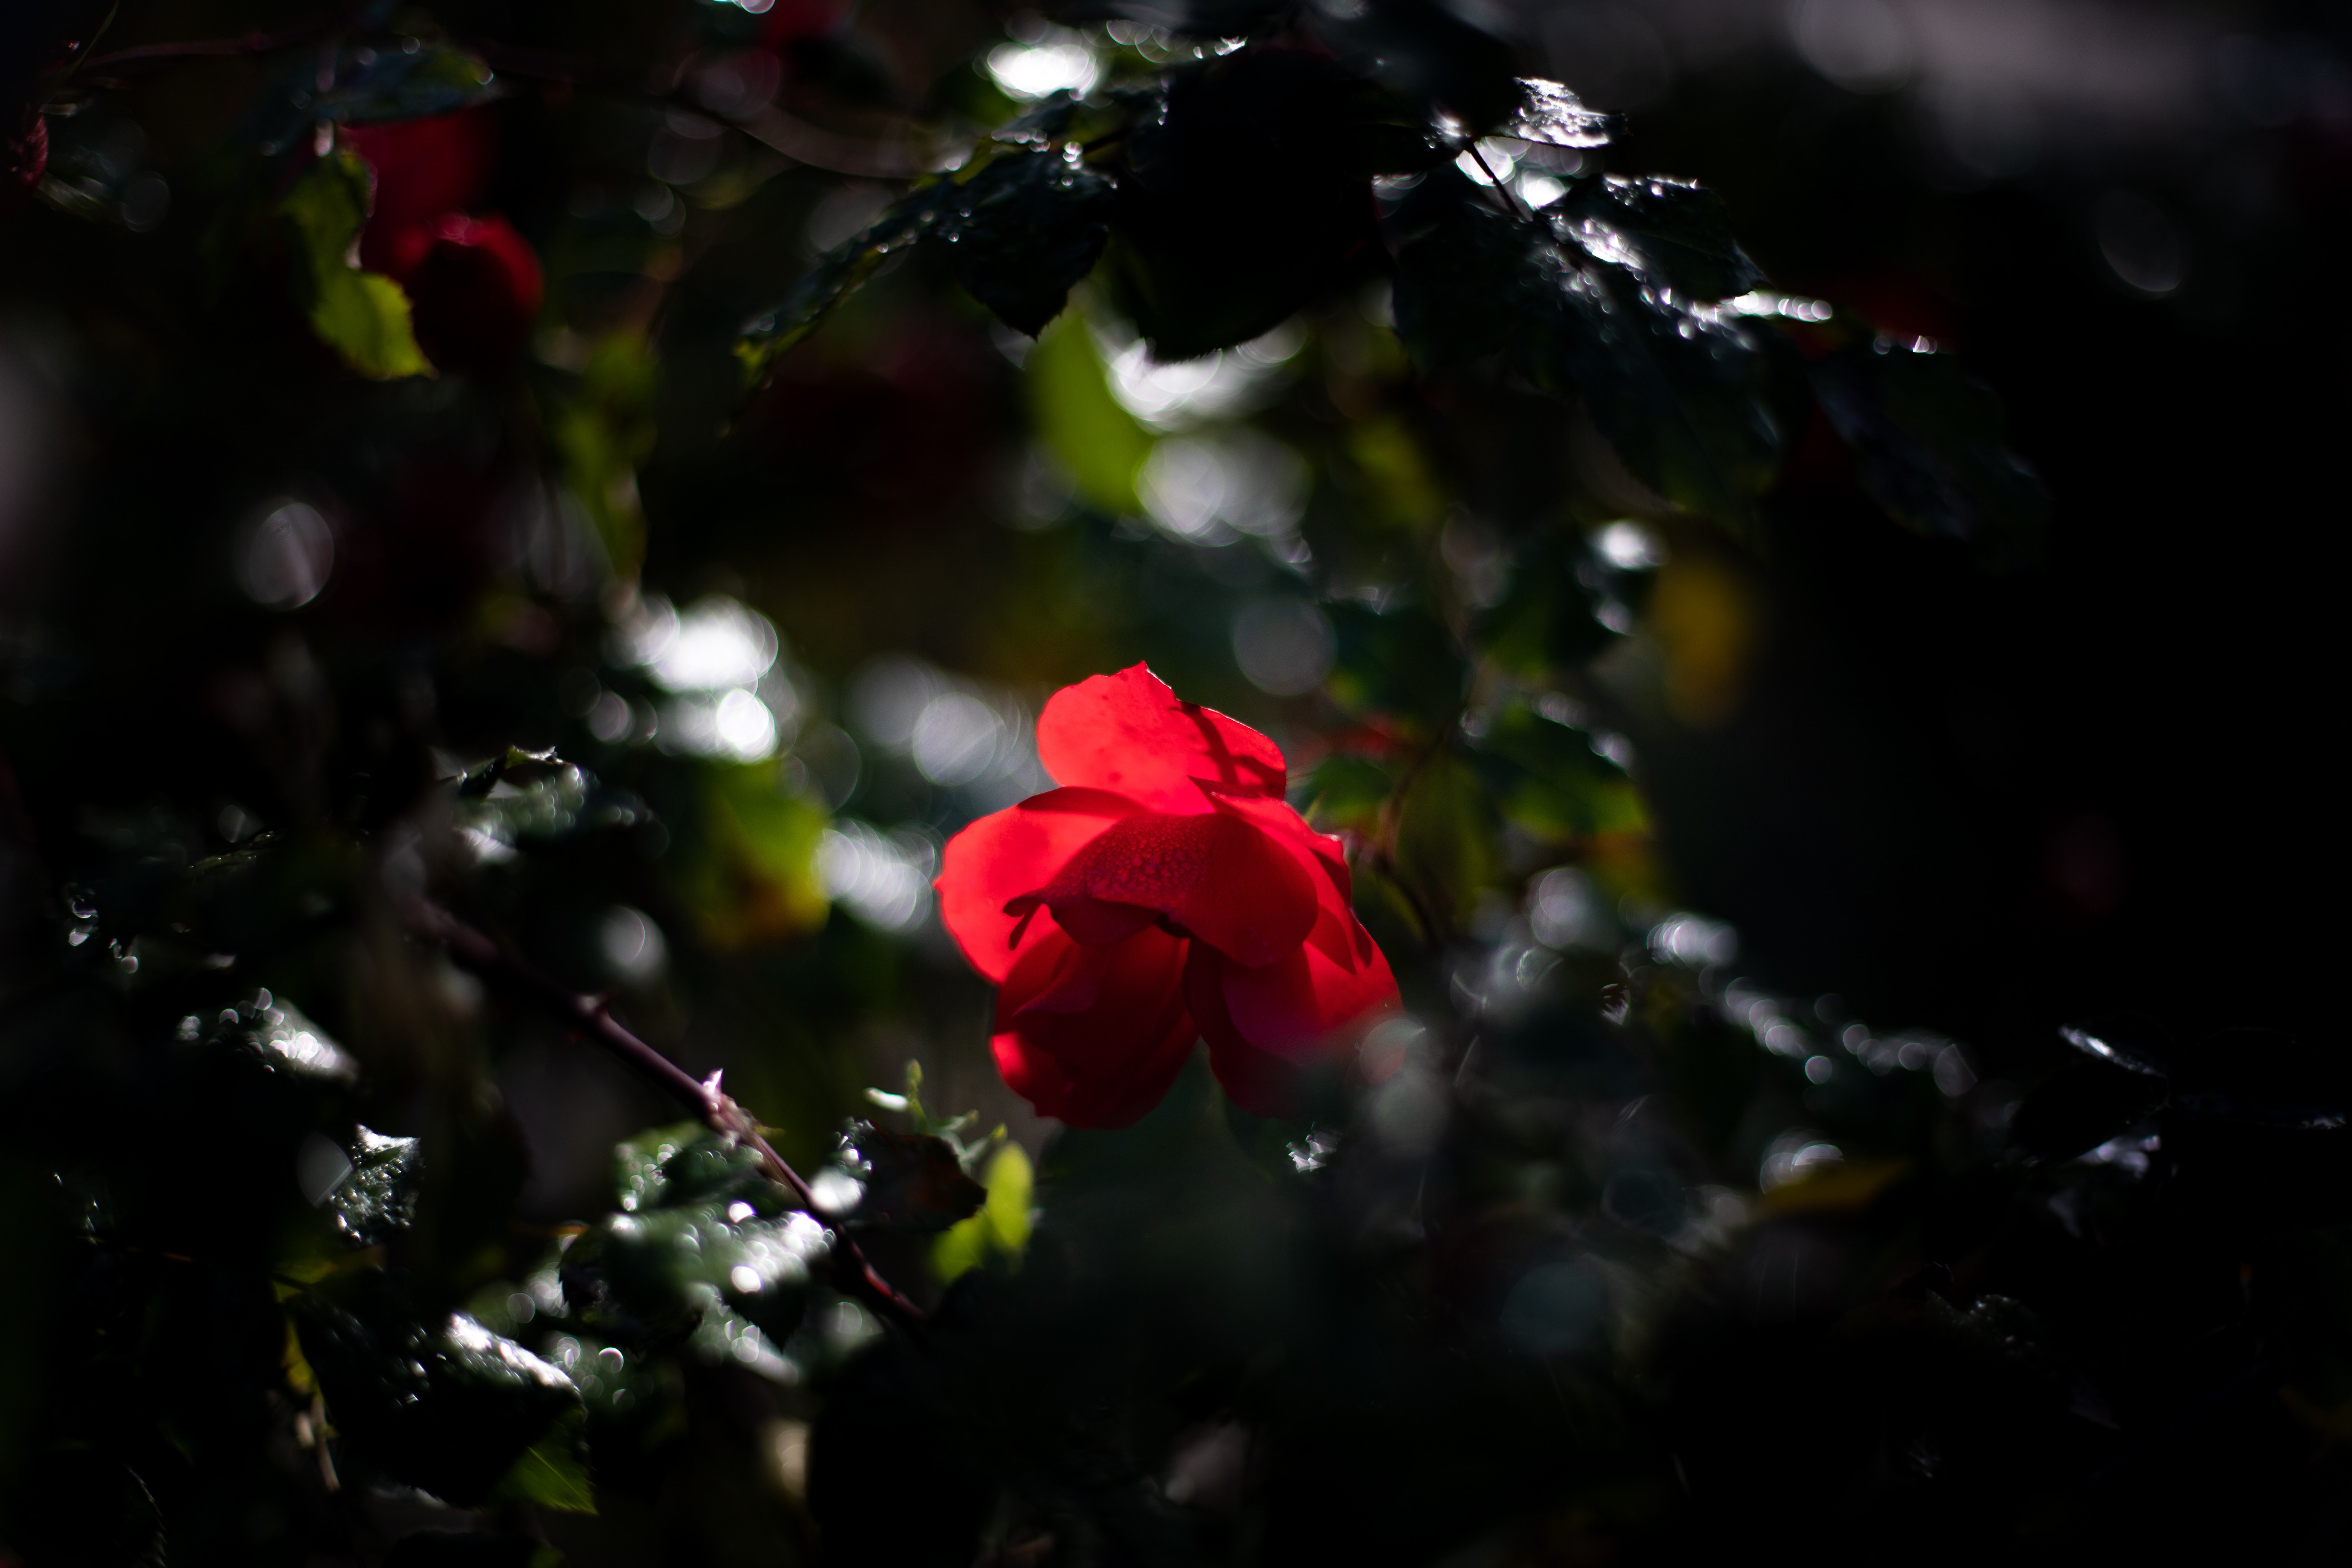 black and red petaled flowers